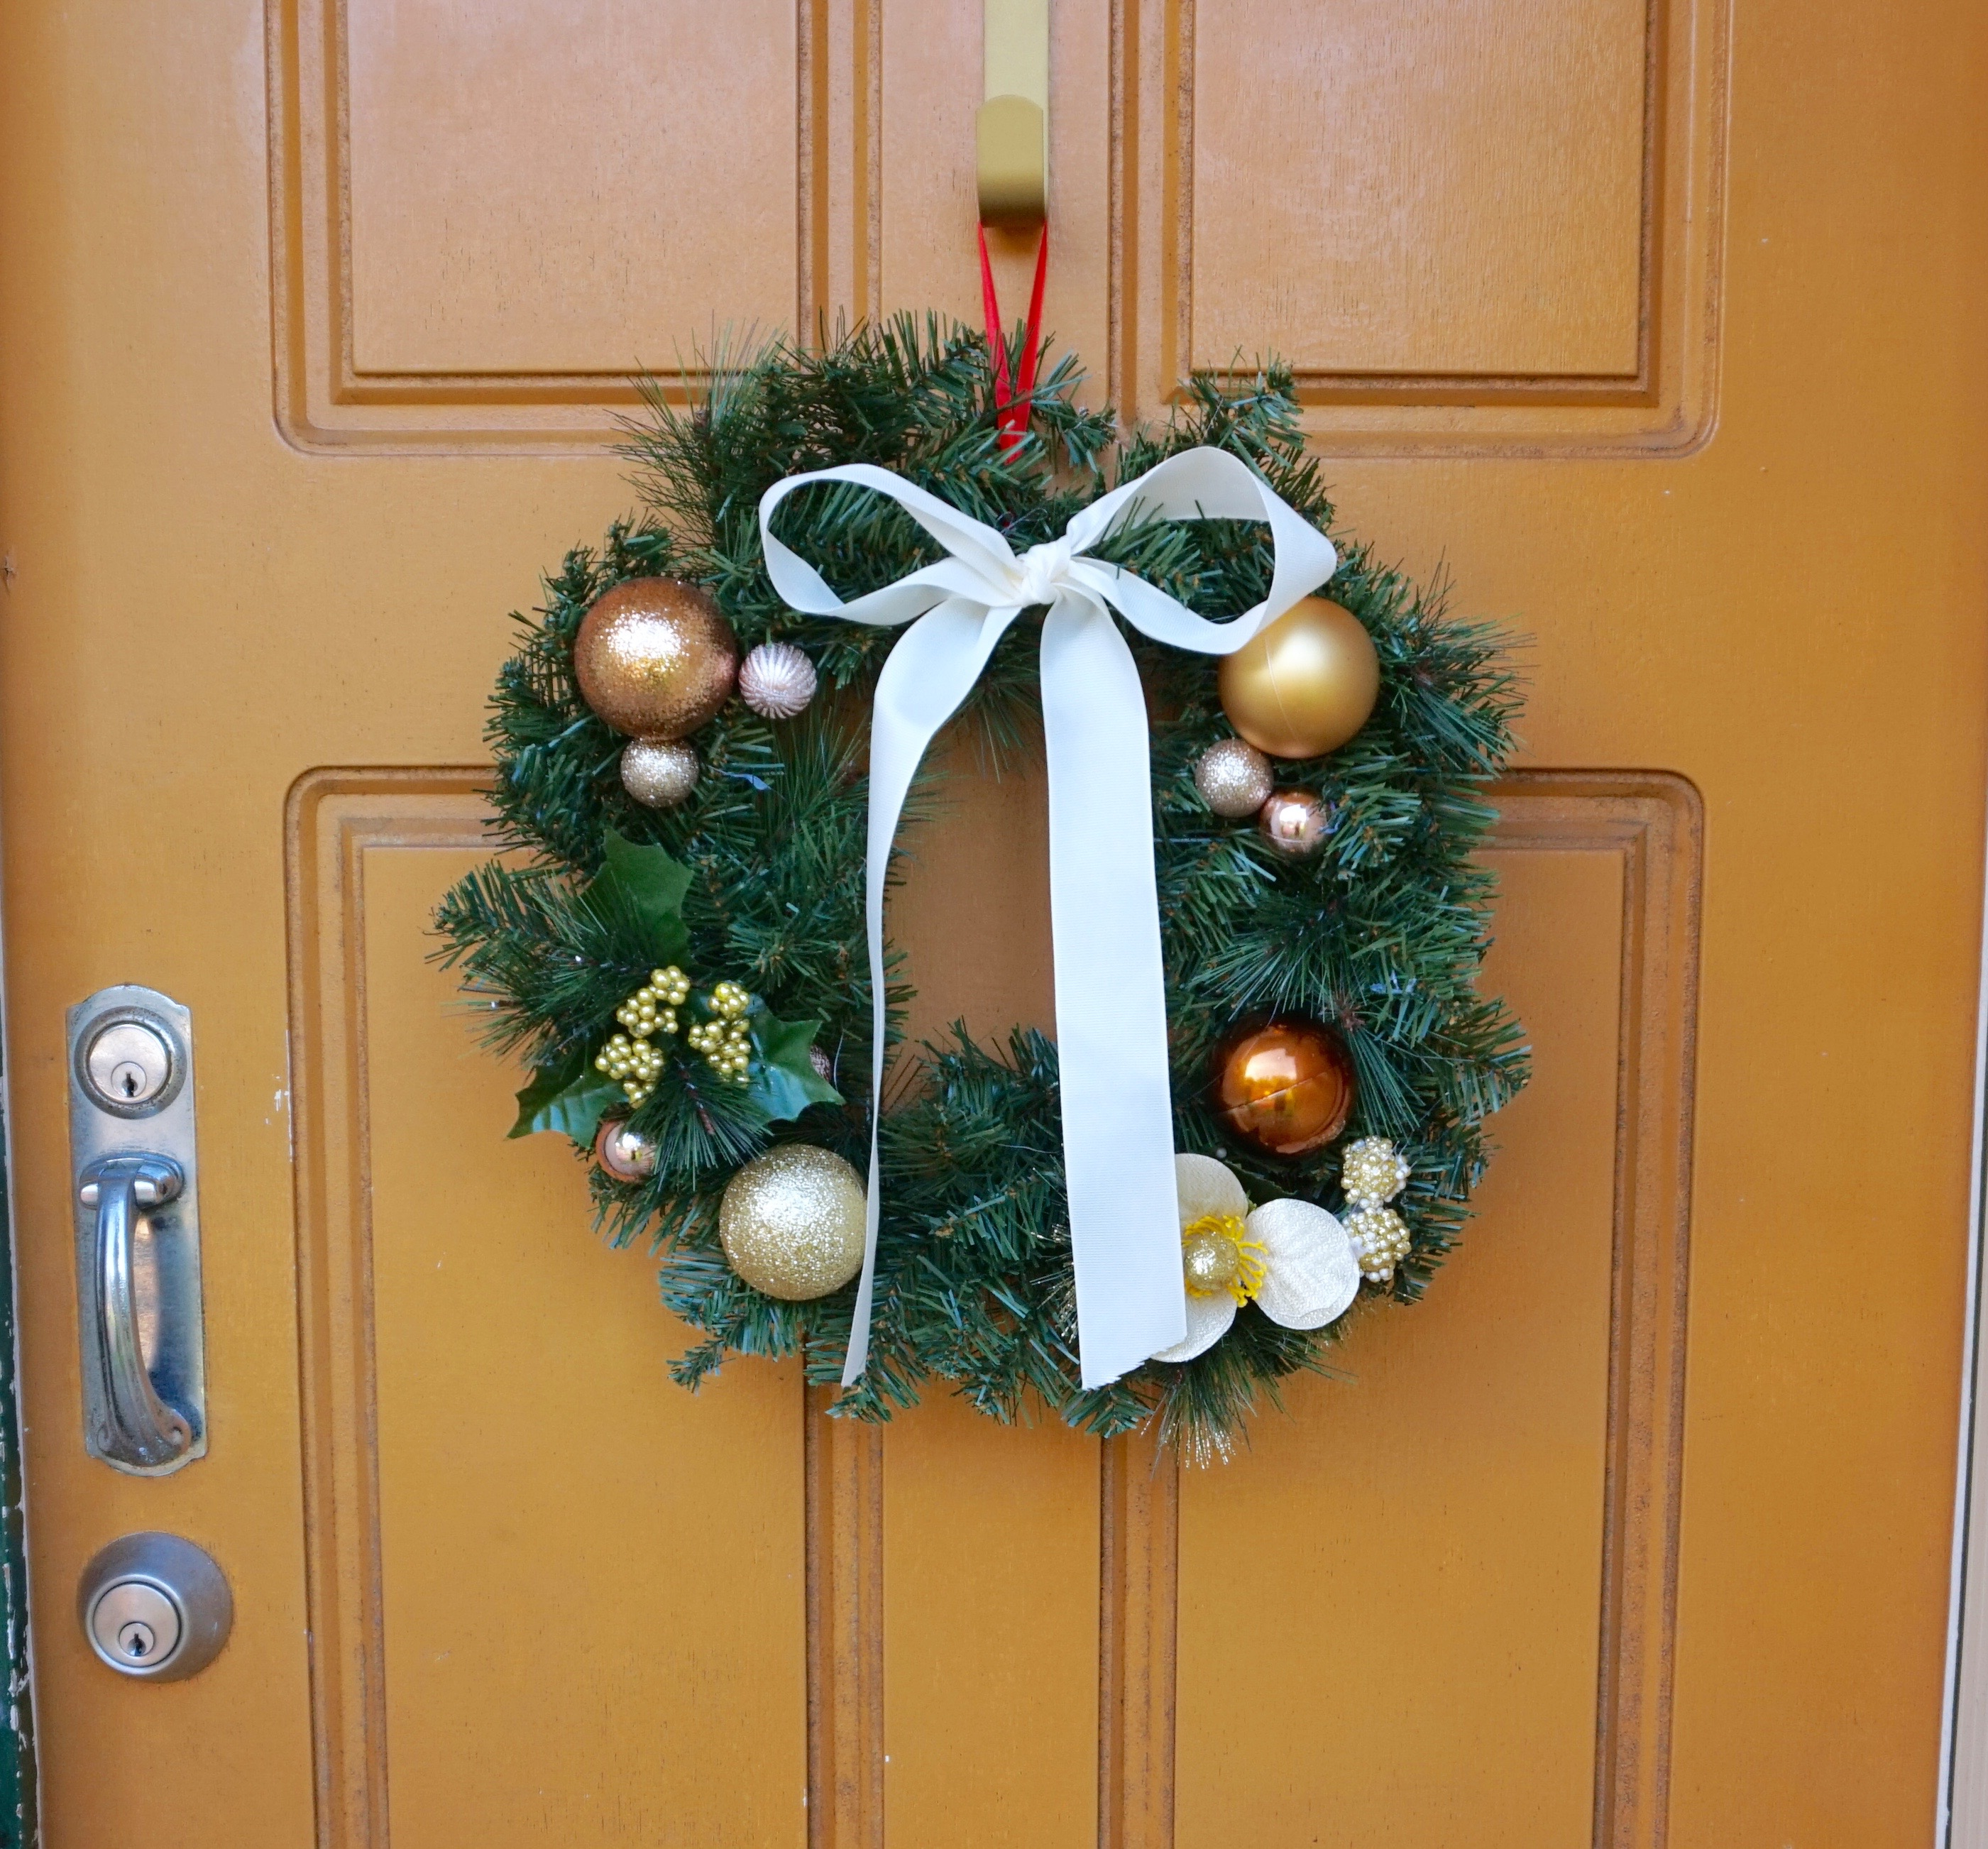 DIY Your Own Christmas Wreath For Under $10